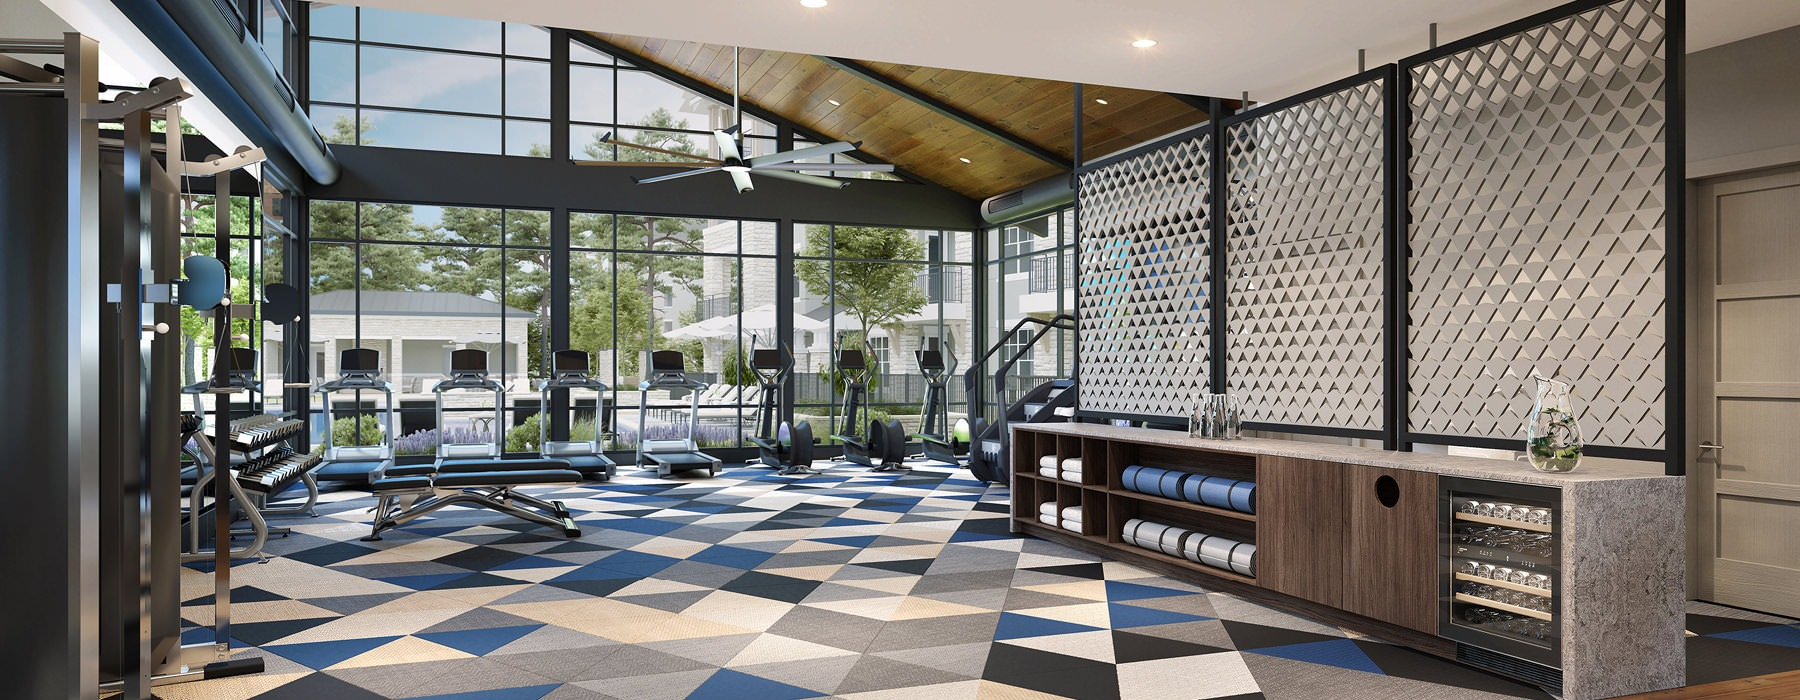 roomy fitness center with floor-to-ceiling windows and large ceiling fans